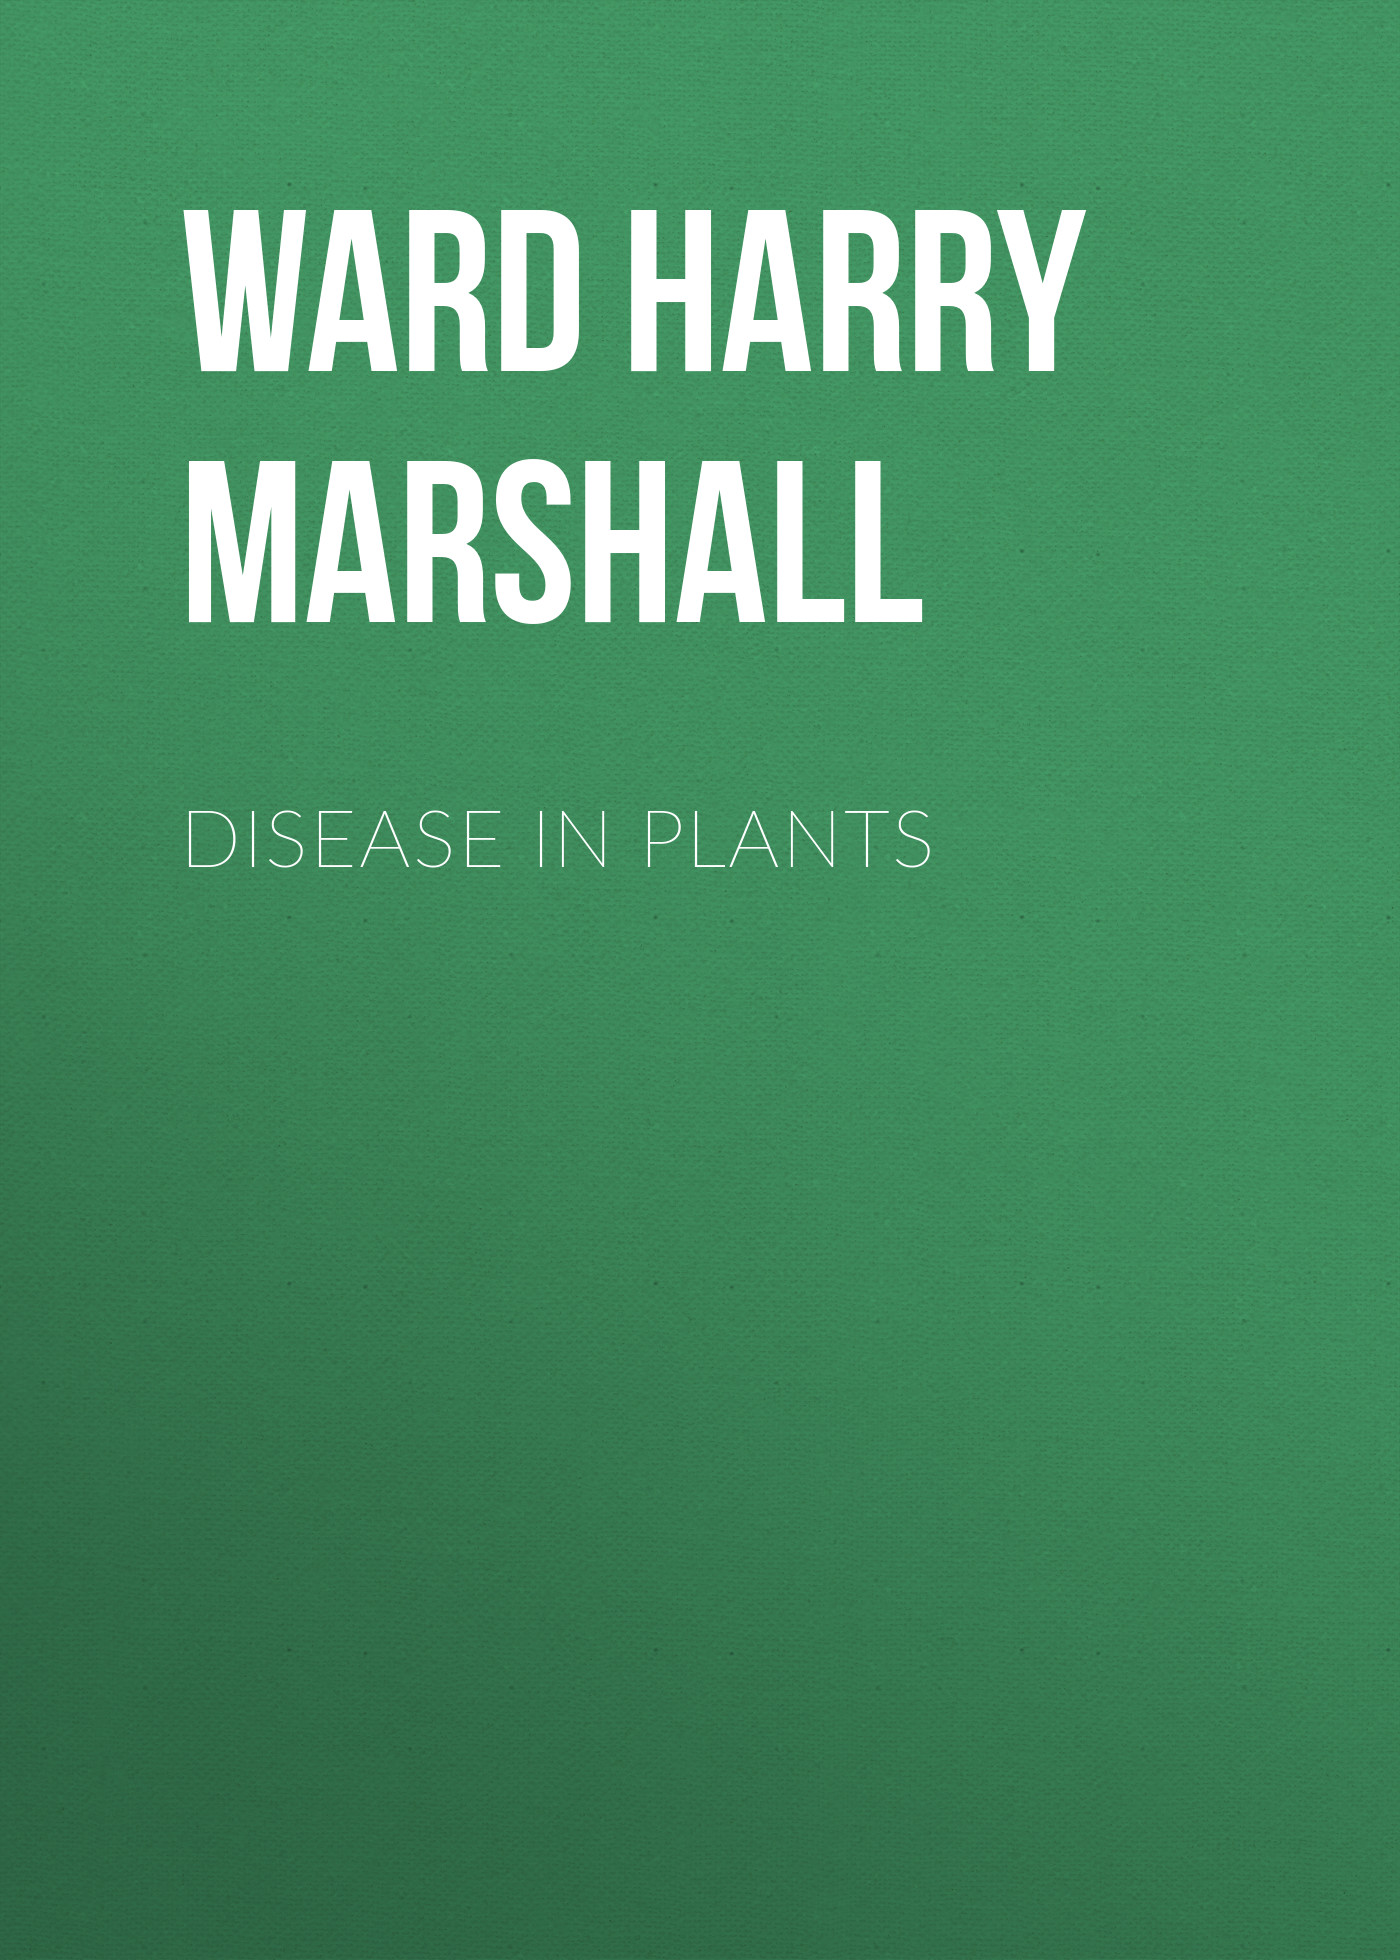 Ward Harry Marshall Disease in Plants